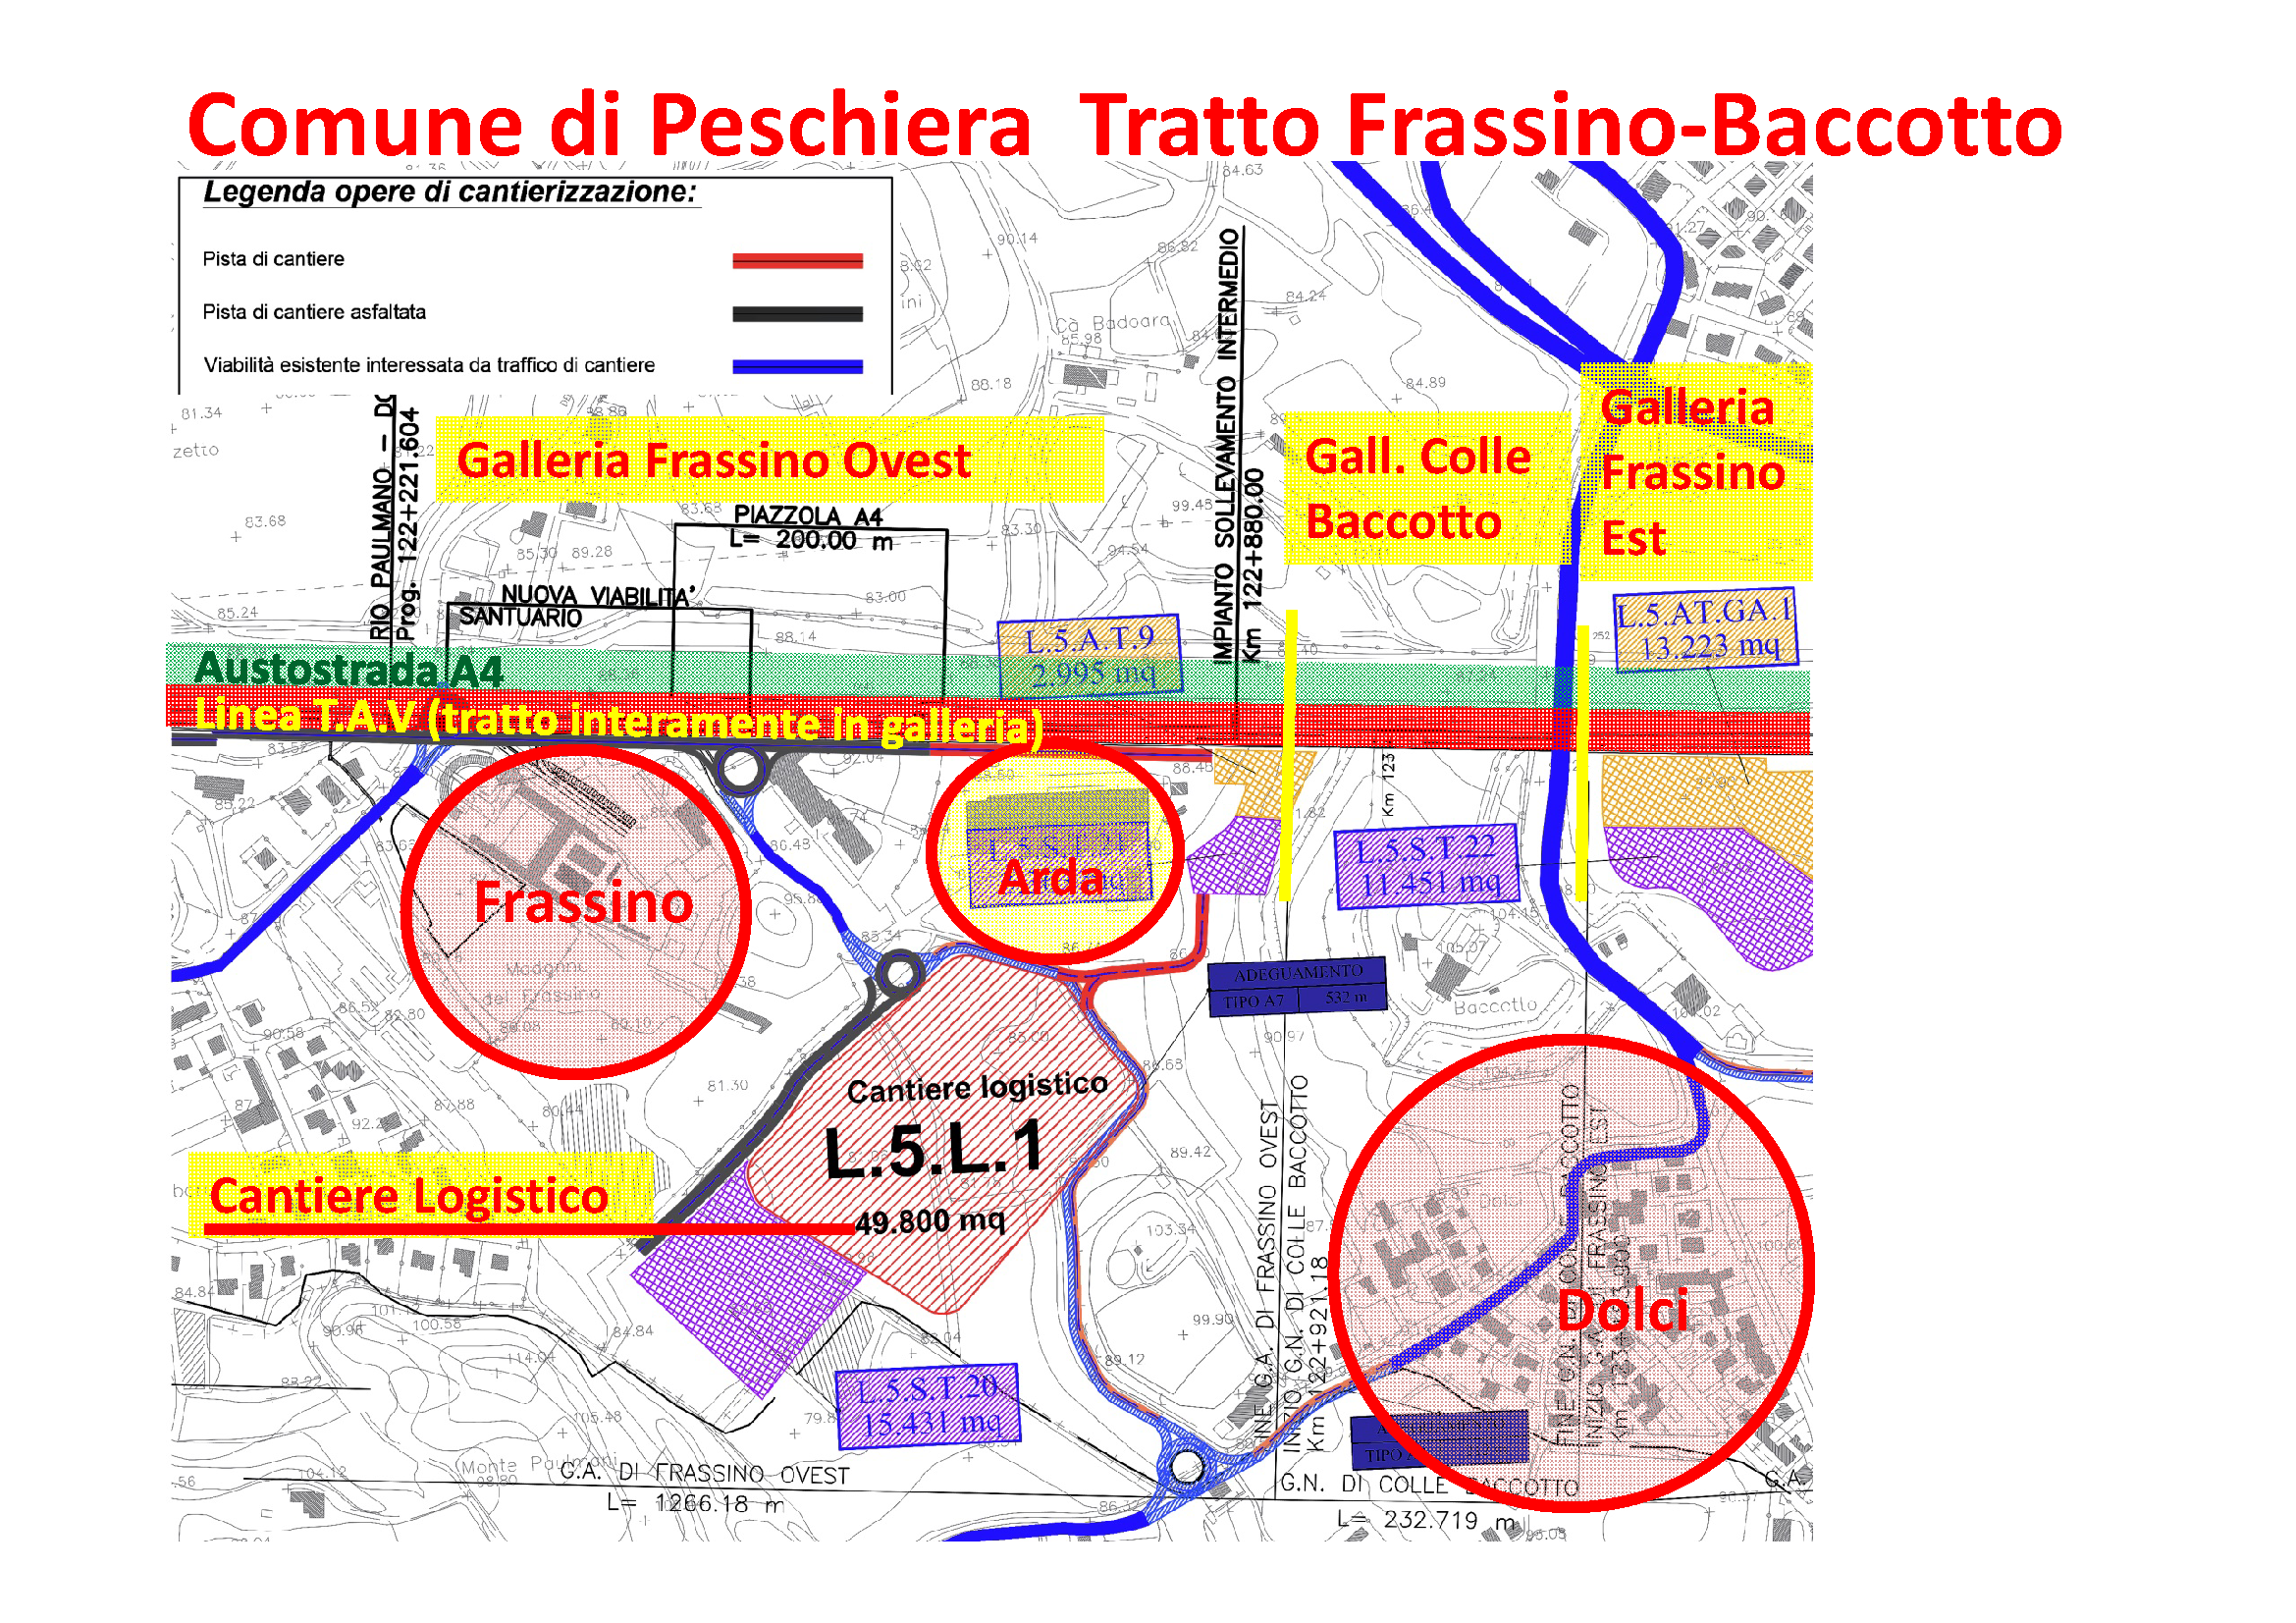 Frassino-Baccotto